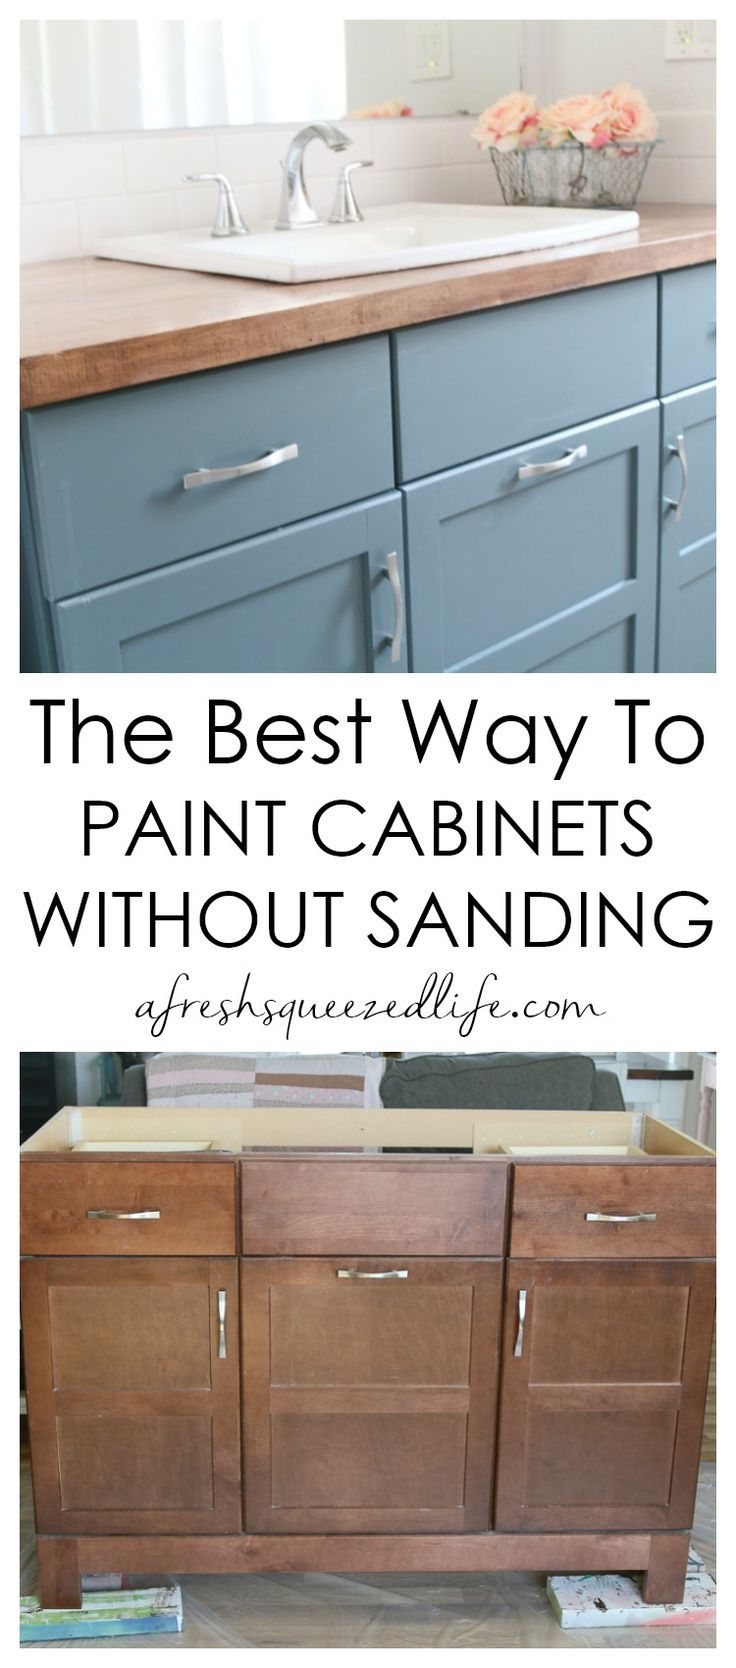 How To Paint Cabinets Without Sanding A Fresh Squeezed Life Painting Cabinets Redo Kitchen Cabinets Cabinet